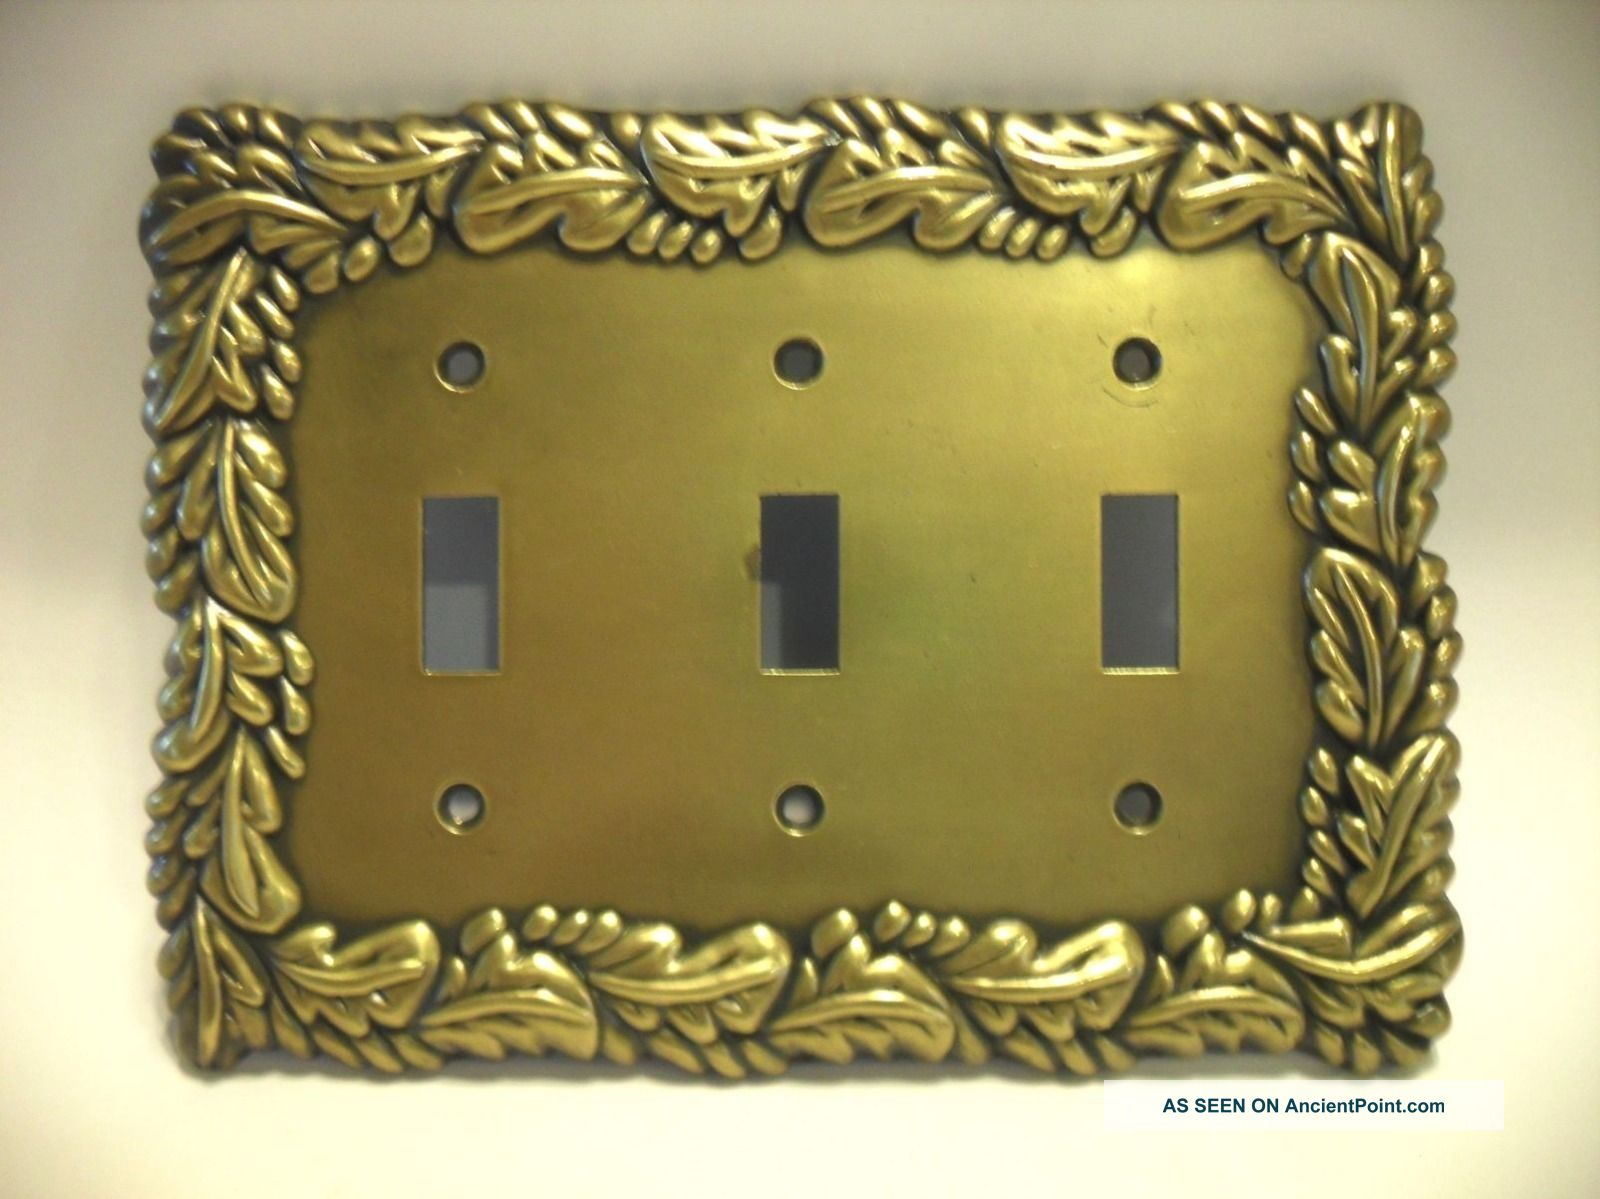 Vintage Metal Triple Light Switch Cover Wall Plate Ornate Scrolled Art Deco